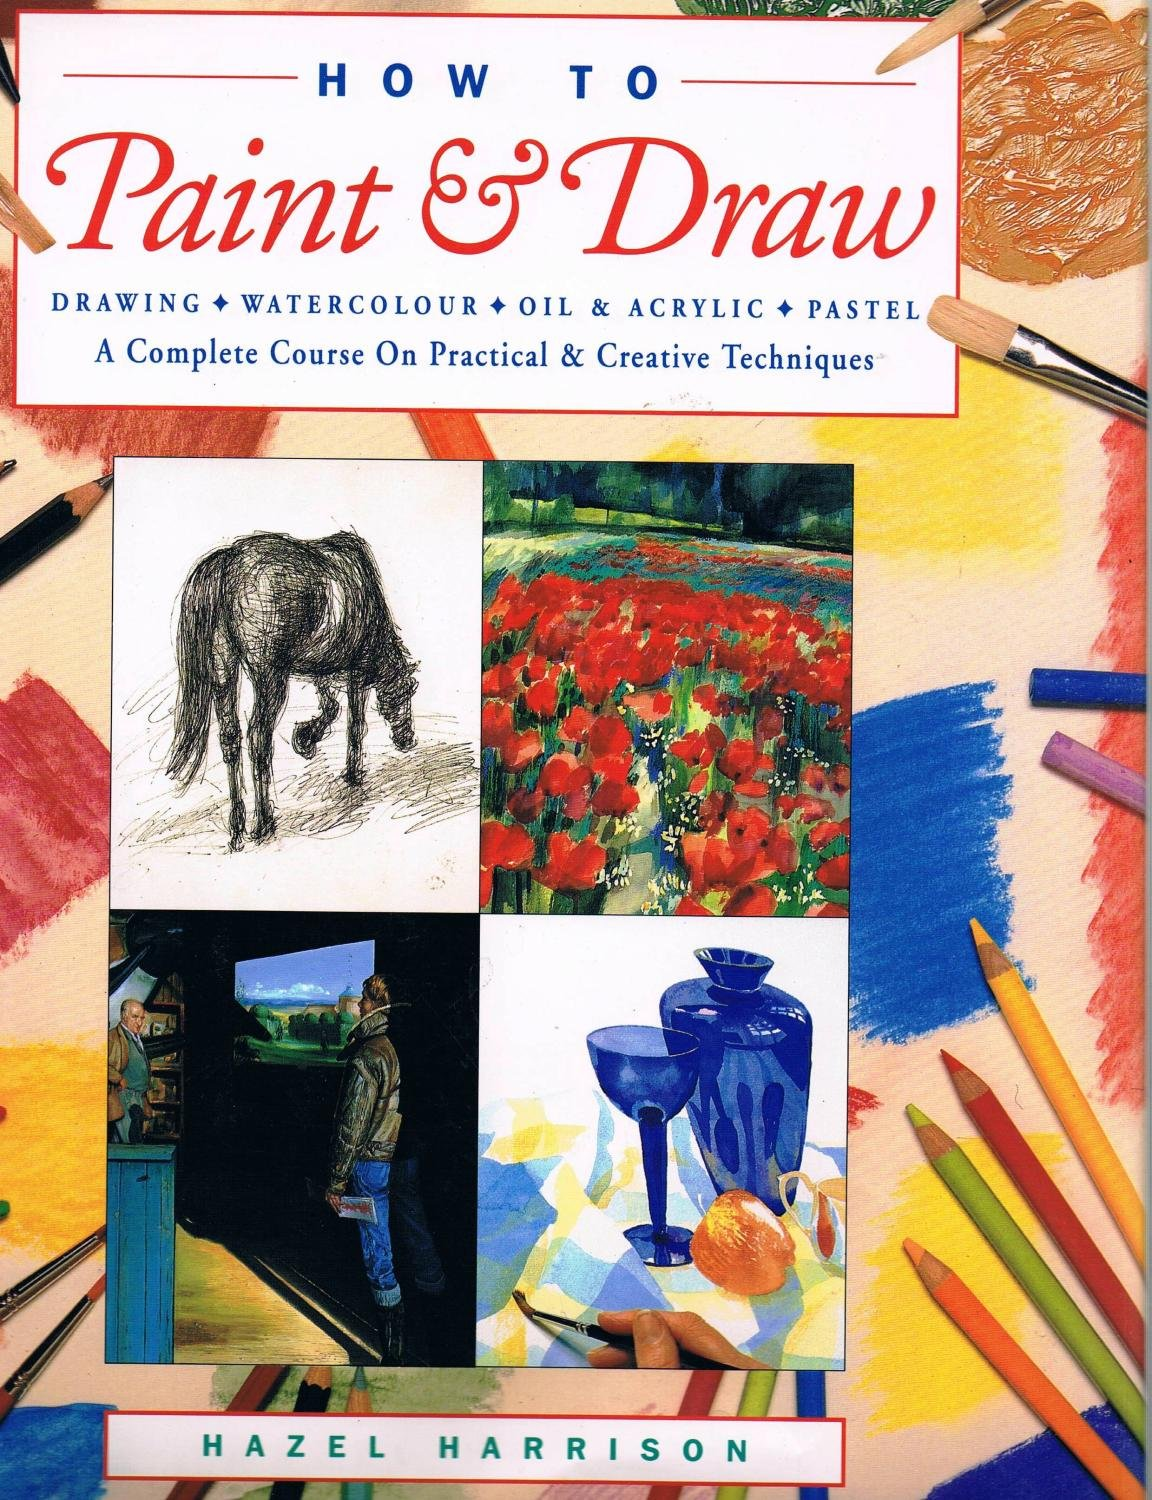 How to Paint & Draw: Drawing, Watercolour, Oil & Acrylic Pastel